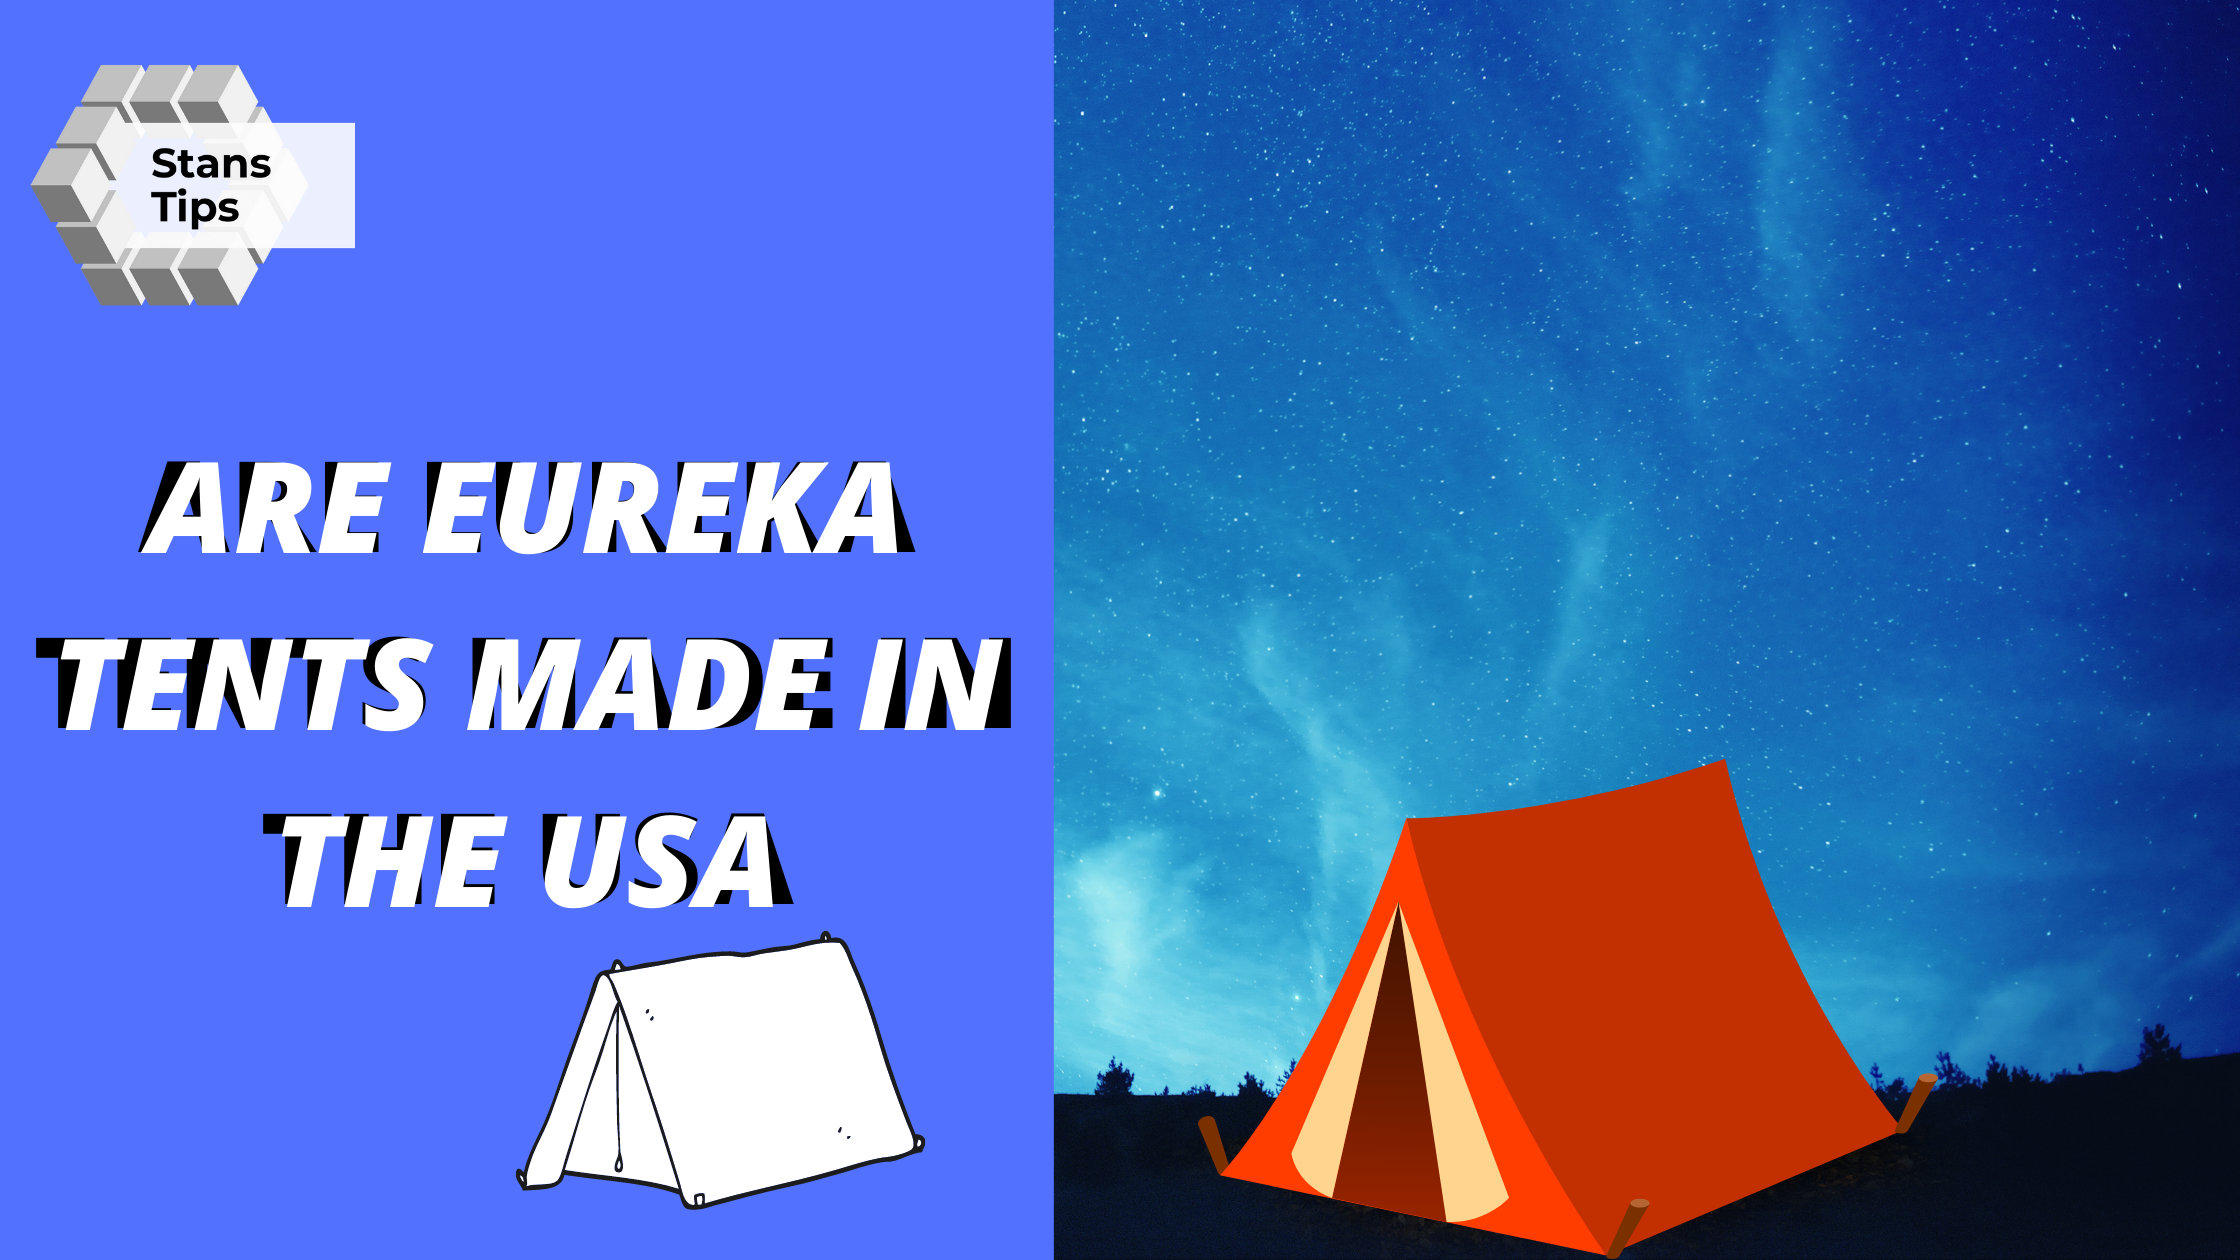 Are Eureka tents made in the USA